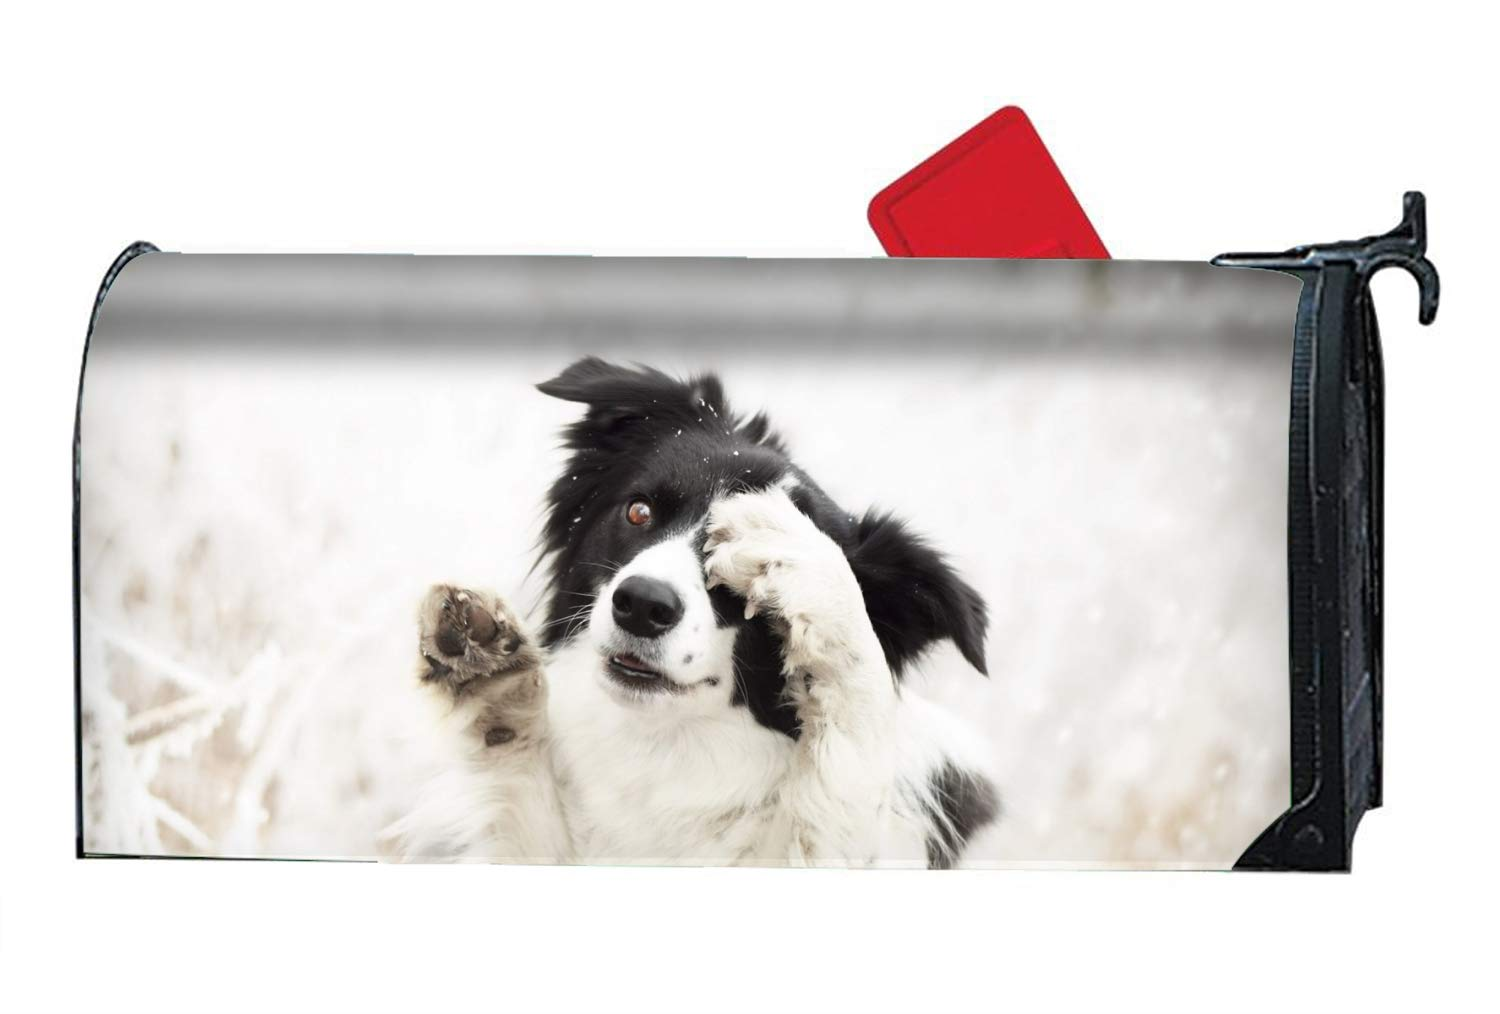 Animal Border Collie Dogs Muzzle Magnetic Mailbox Covers, Yard Decorations Suitable for Spring, Summer, Fall/Autumn and Winter by MAILL